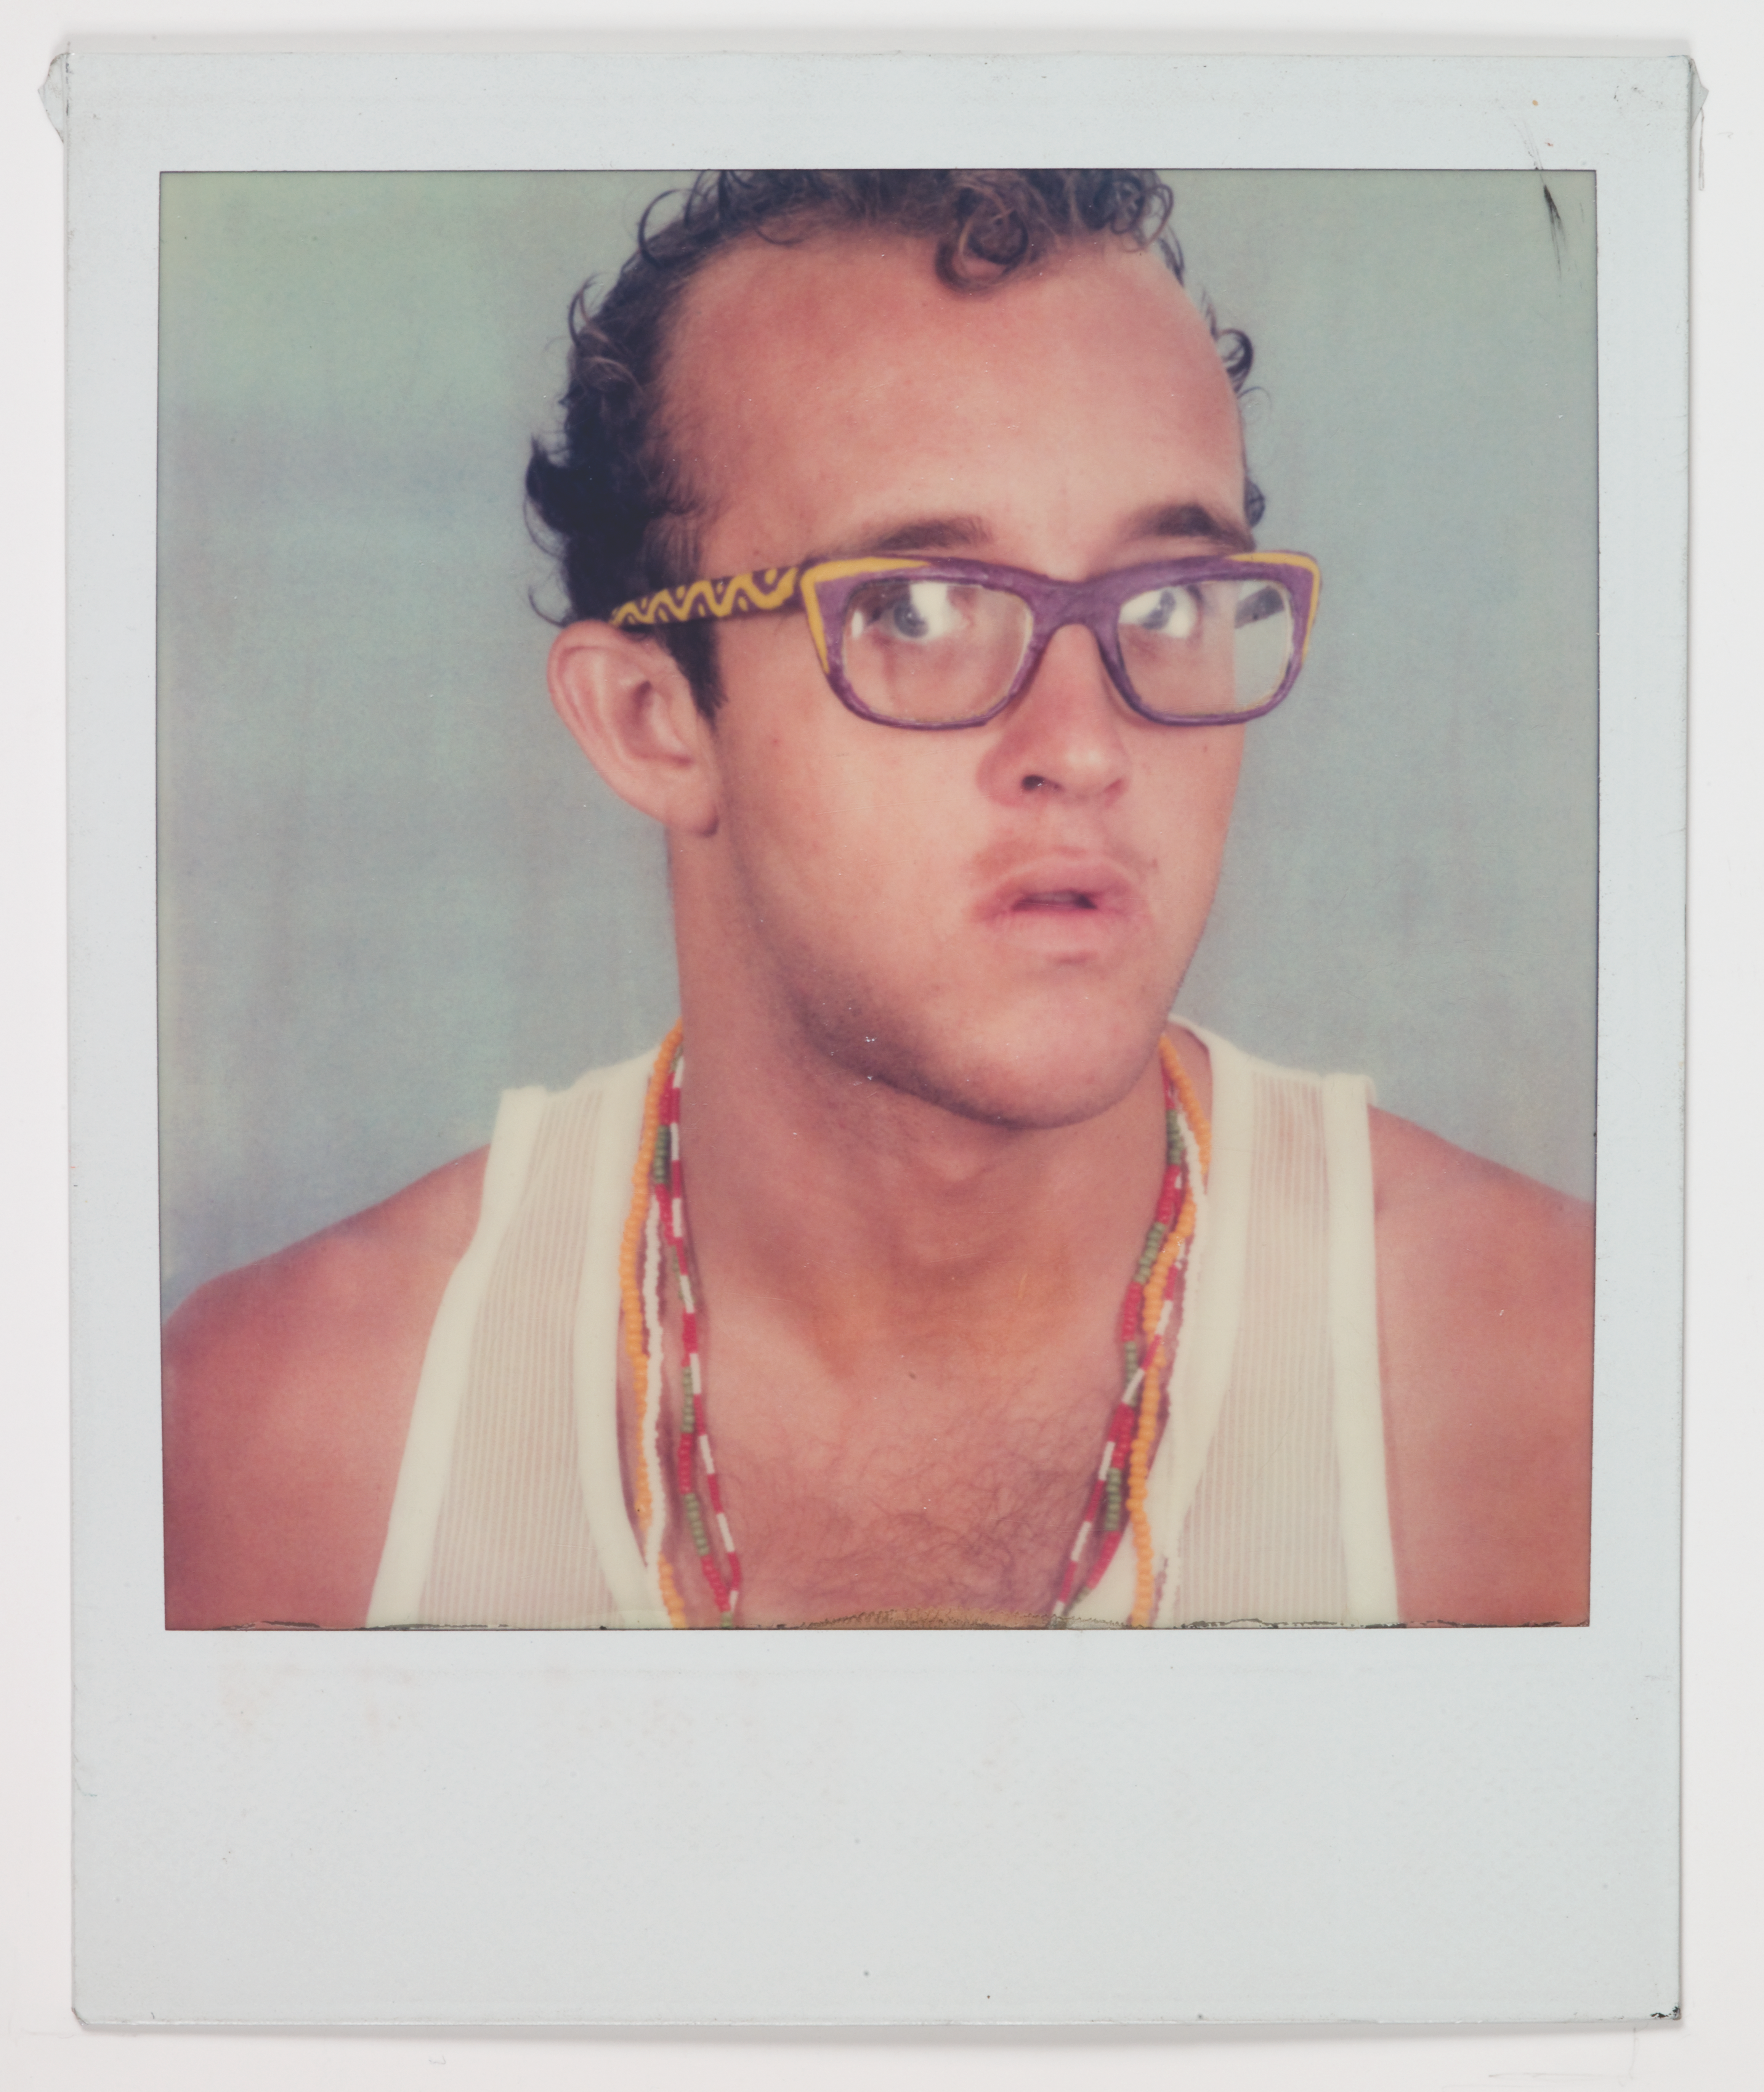 Image of artist Keith Haring. He wears purple glasses with yellow designs on the sides, a white tank top, colorful necklaces, and has short curly hair.